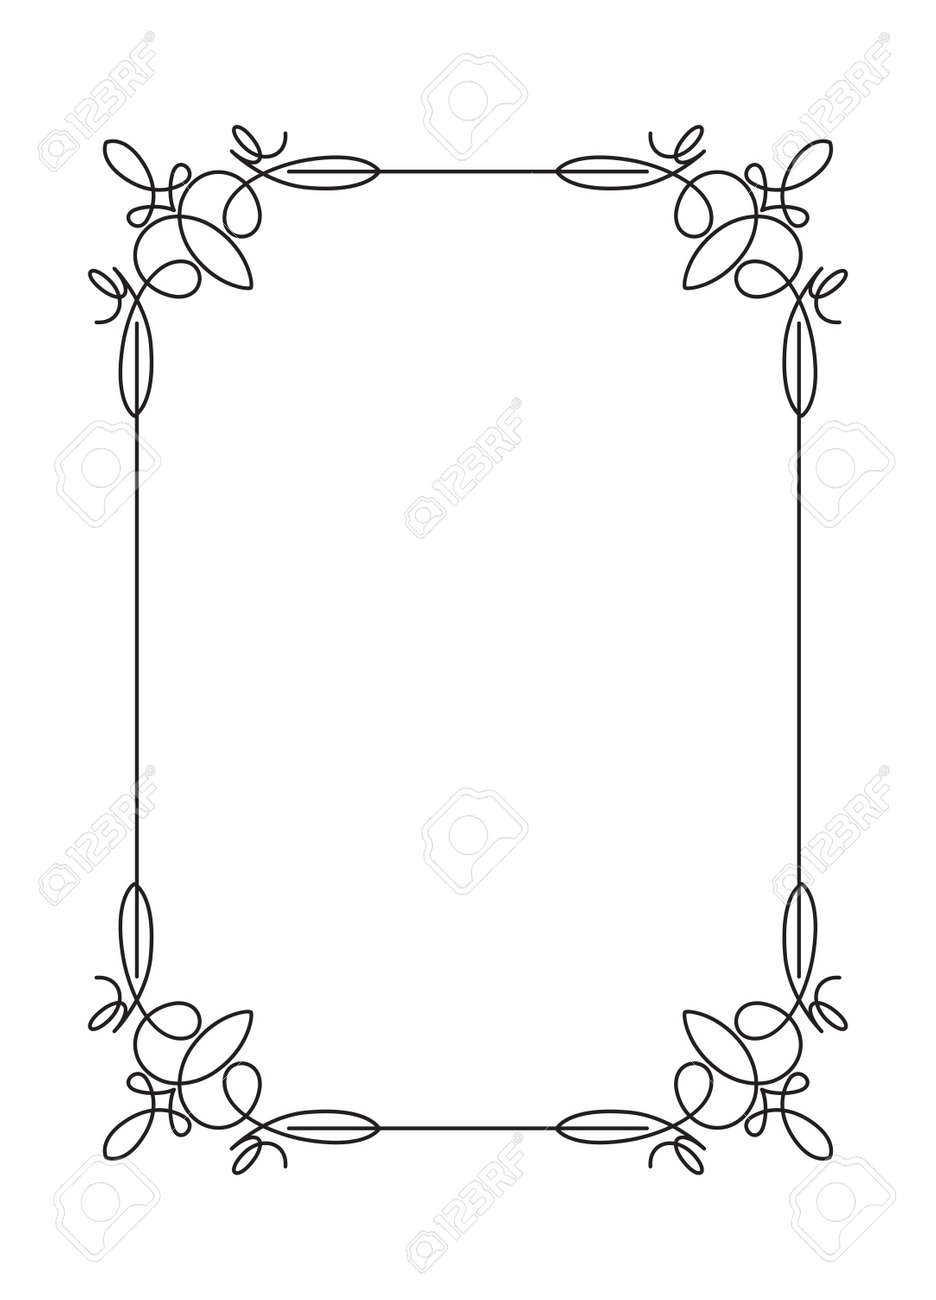 Classical Decorative Simple Calligraphic Frame In Mono Line Style Stock Vector